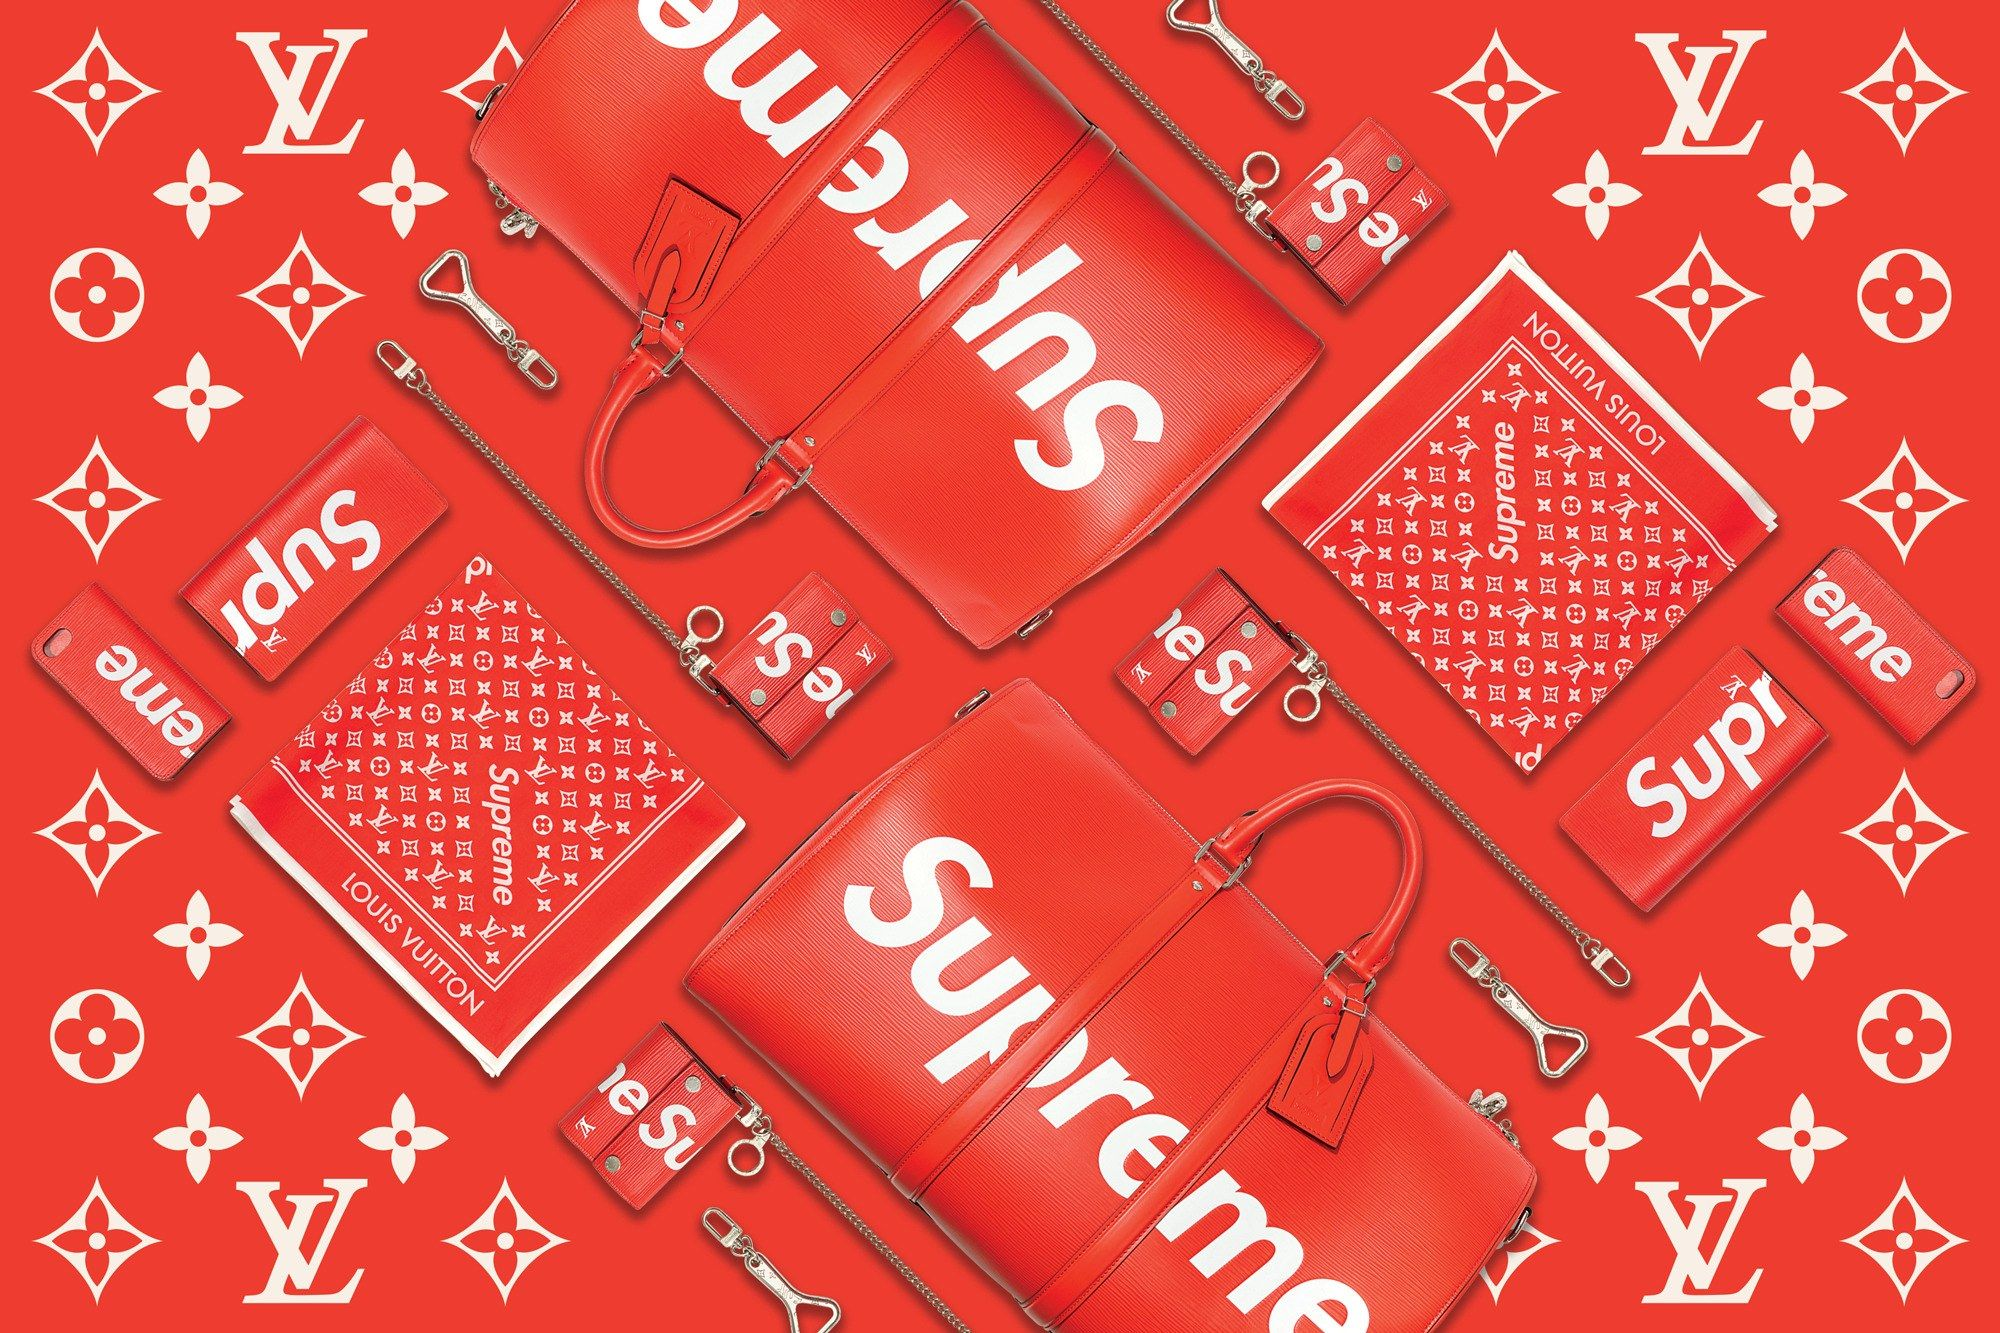 Louis Vuitton Red Wallpapers Top Free Louis Vuitton Red